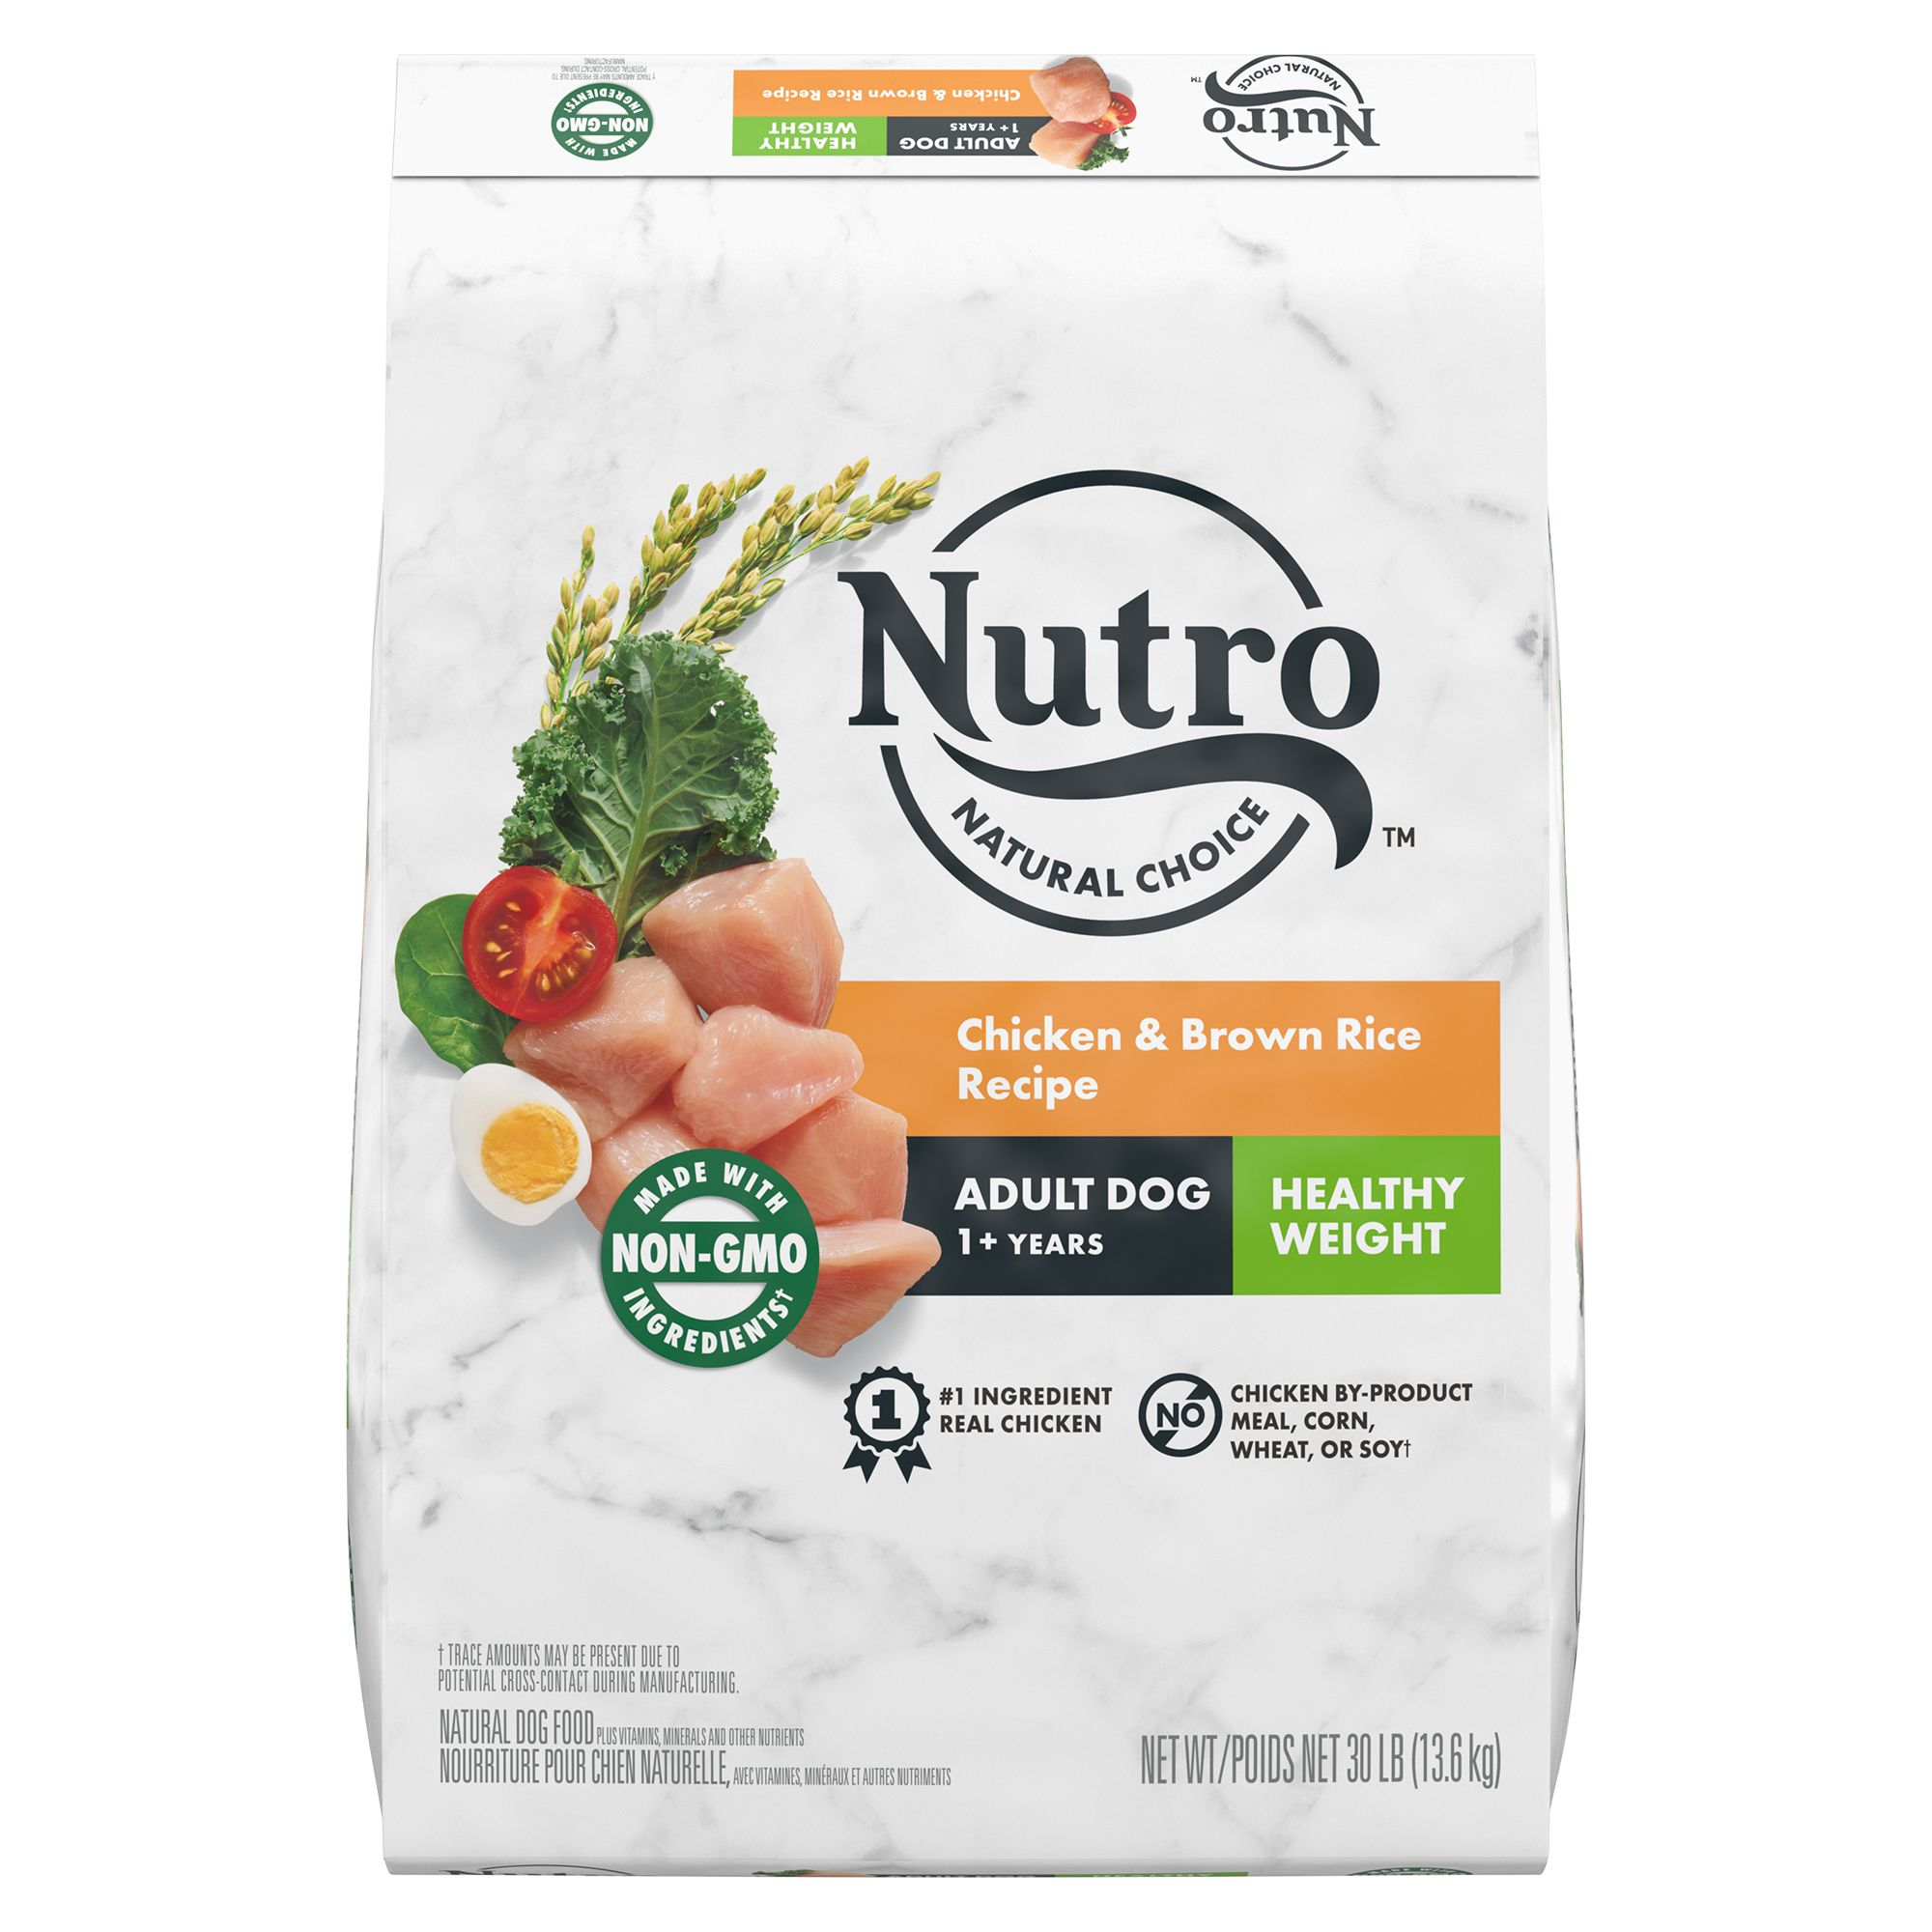 Nutro® Lite Chicken, Brown Rice and Oatmeal Weight Loss Adult Dog Food 5231837